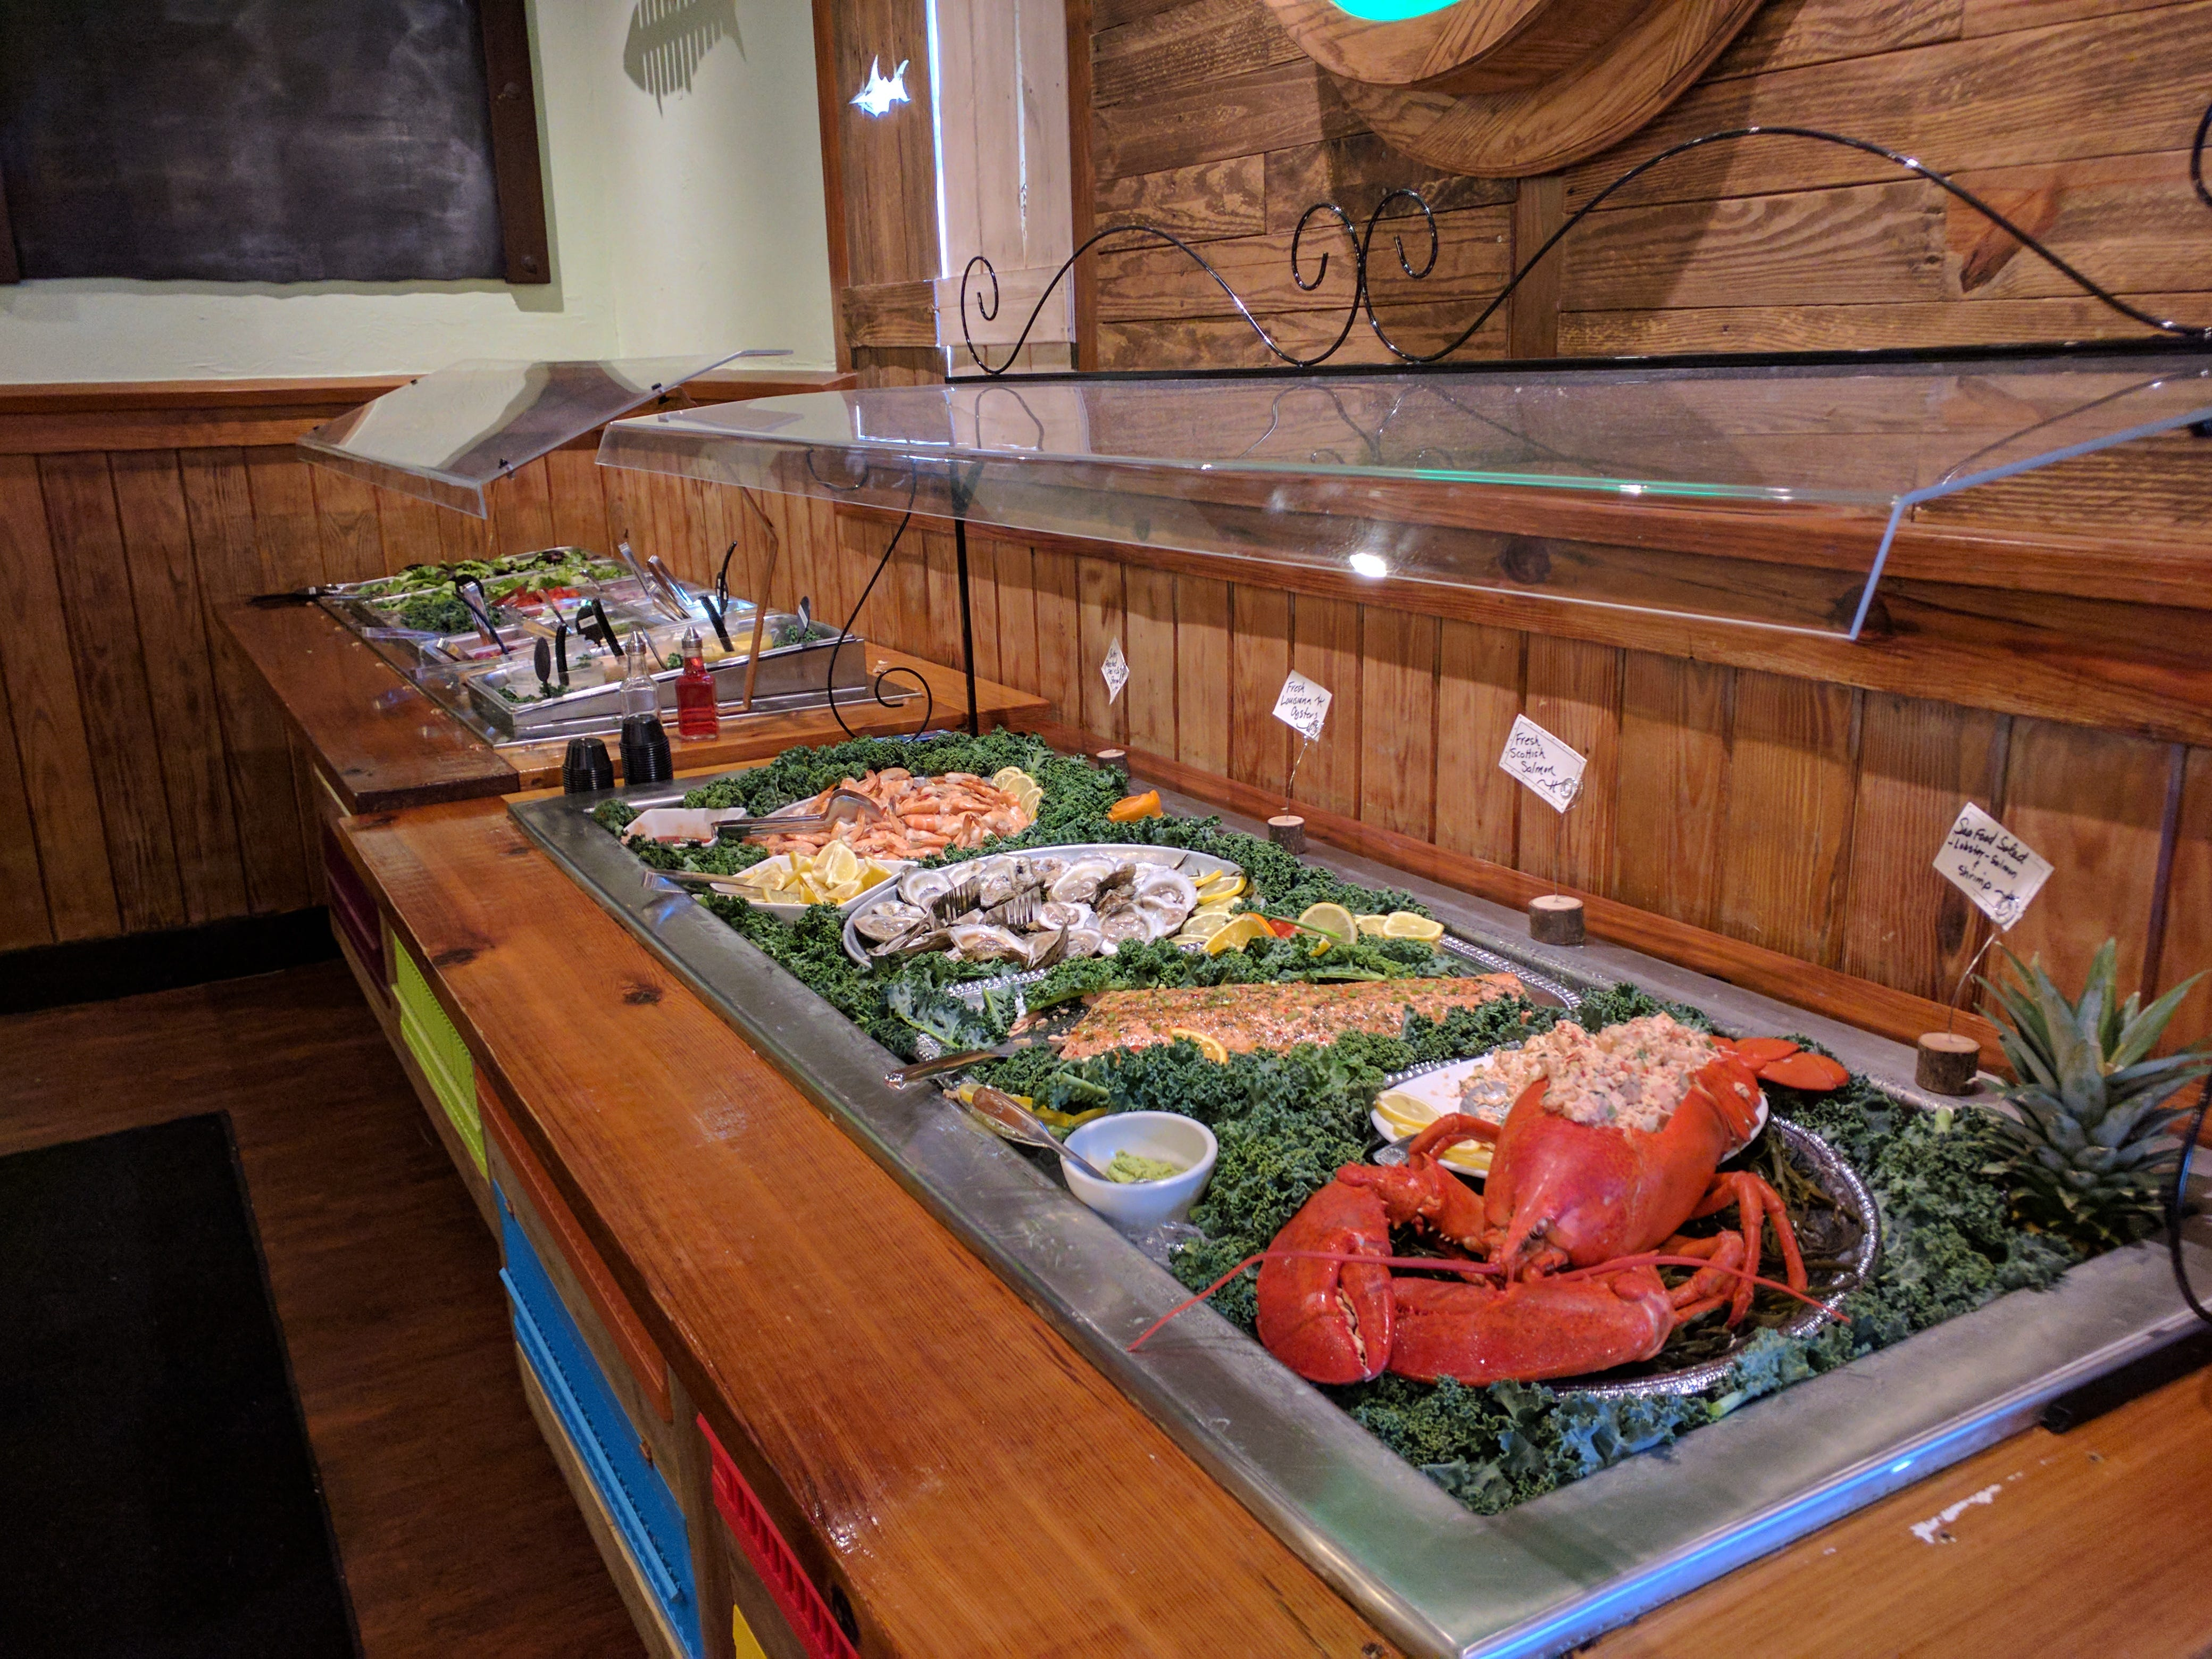 Green Marlin is located on U.S. 1 in Vero Beach and offers a plentiful salad and seafood bar.